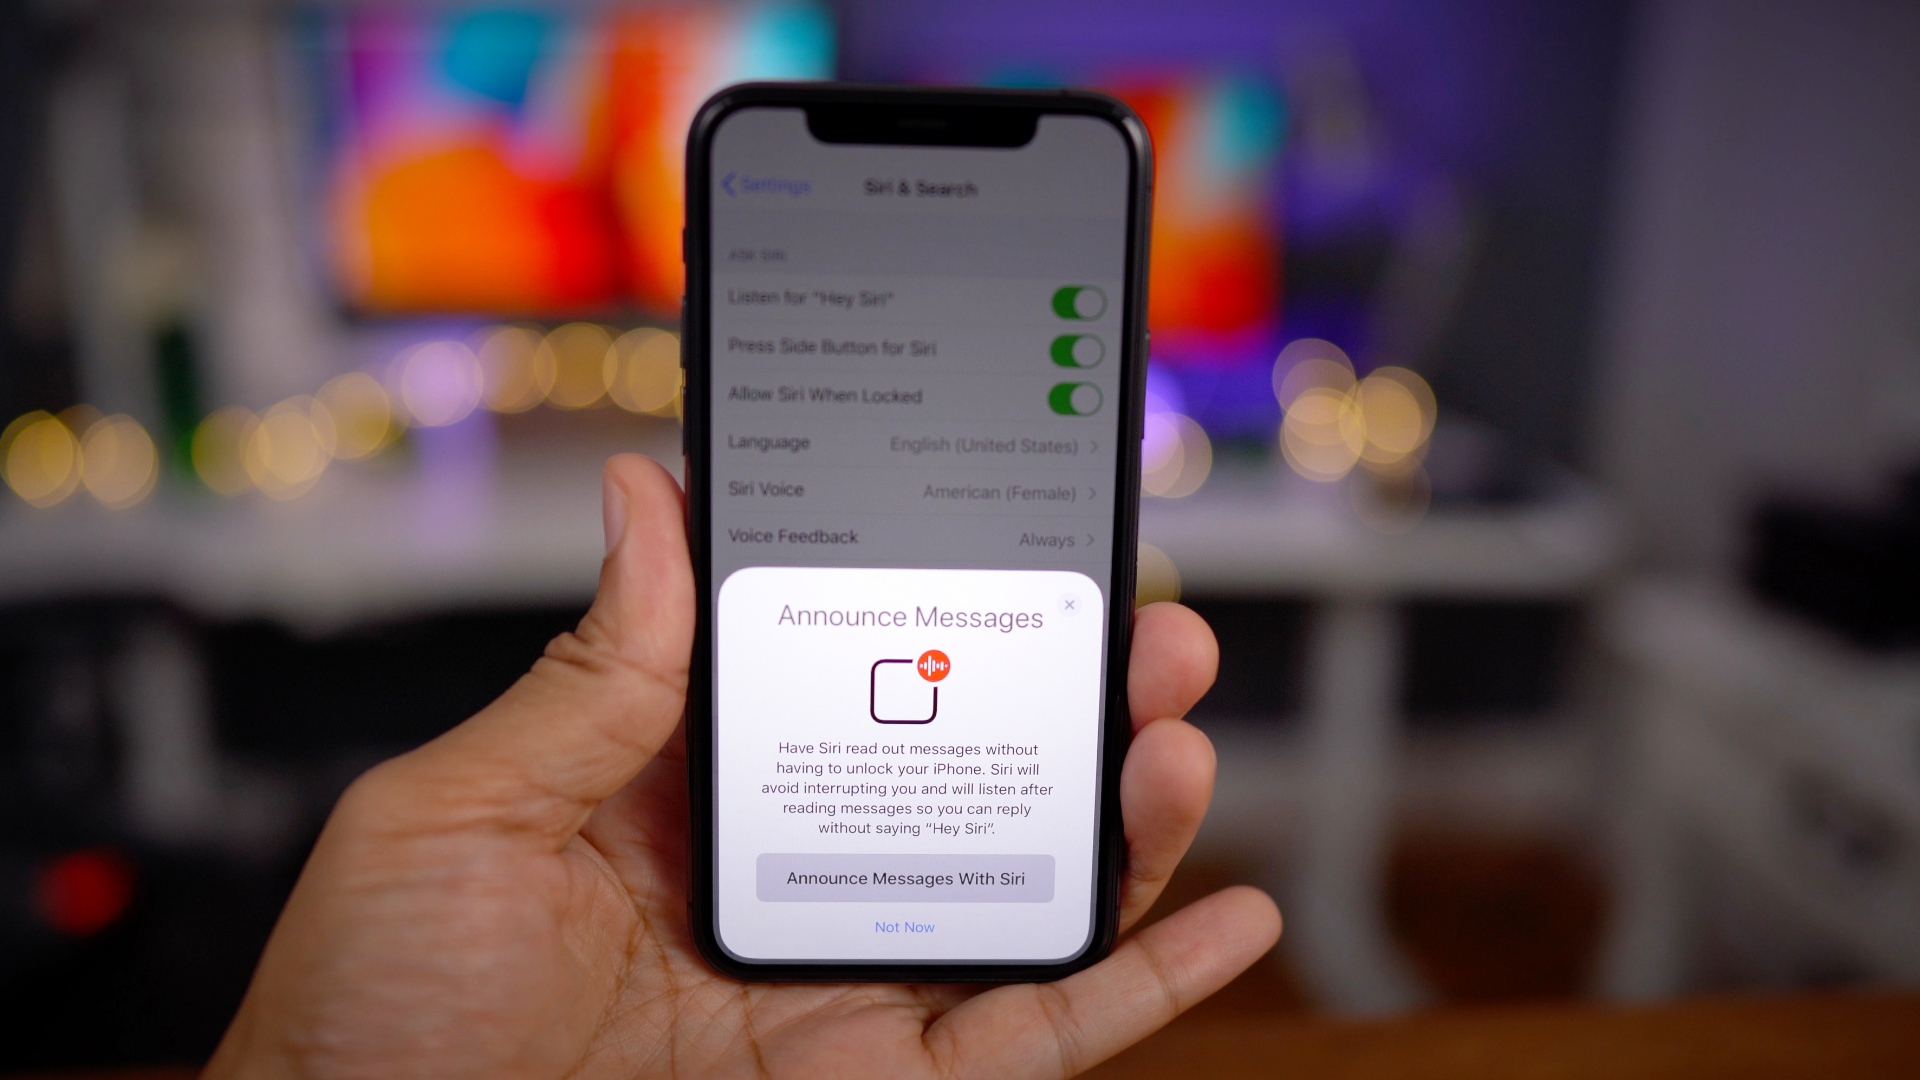 iOS-13-Changes-and-Features-9to5Mac